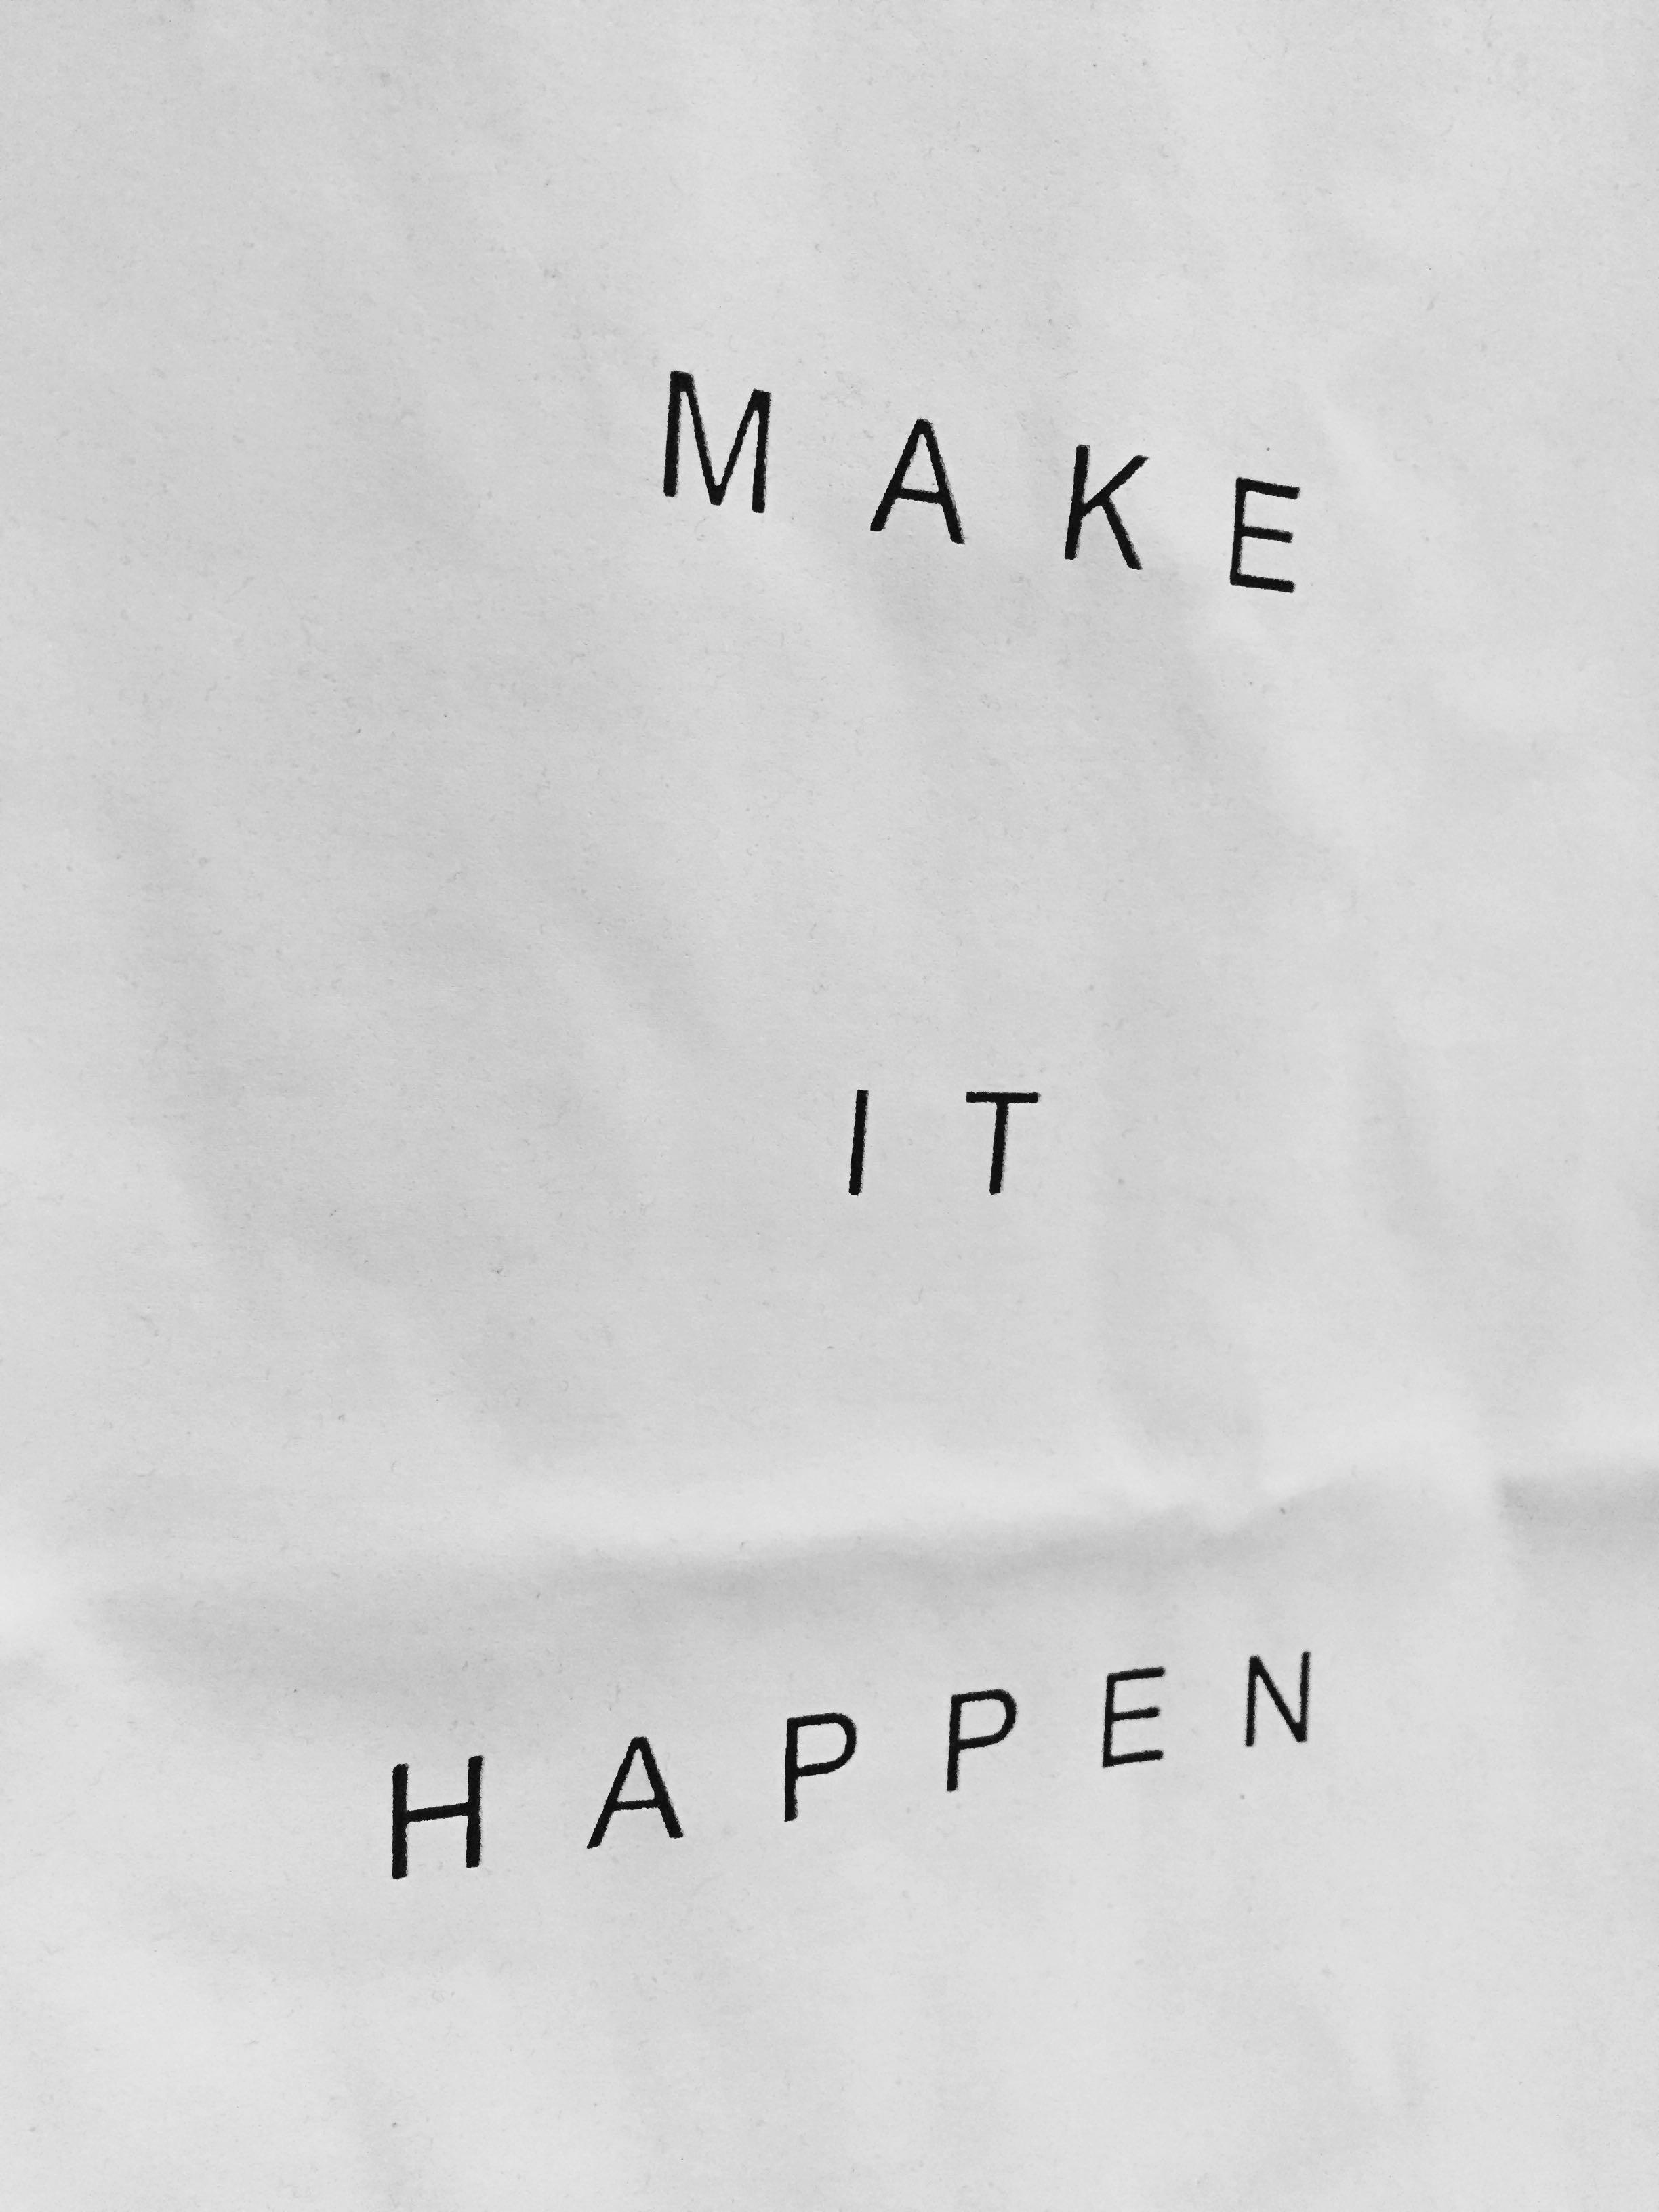 Make It Happen >> Kaos Make It Happen Men S Fashion Men S Clothes Tops On